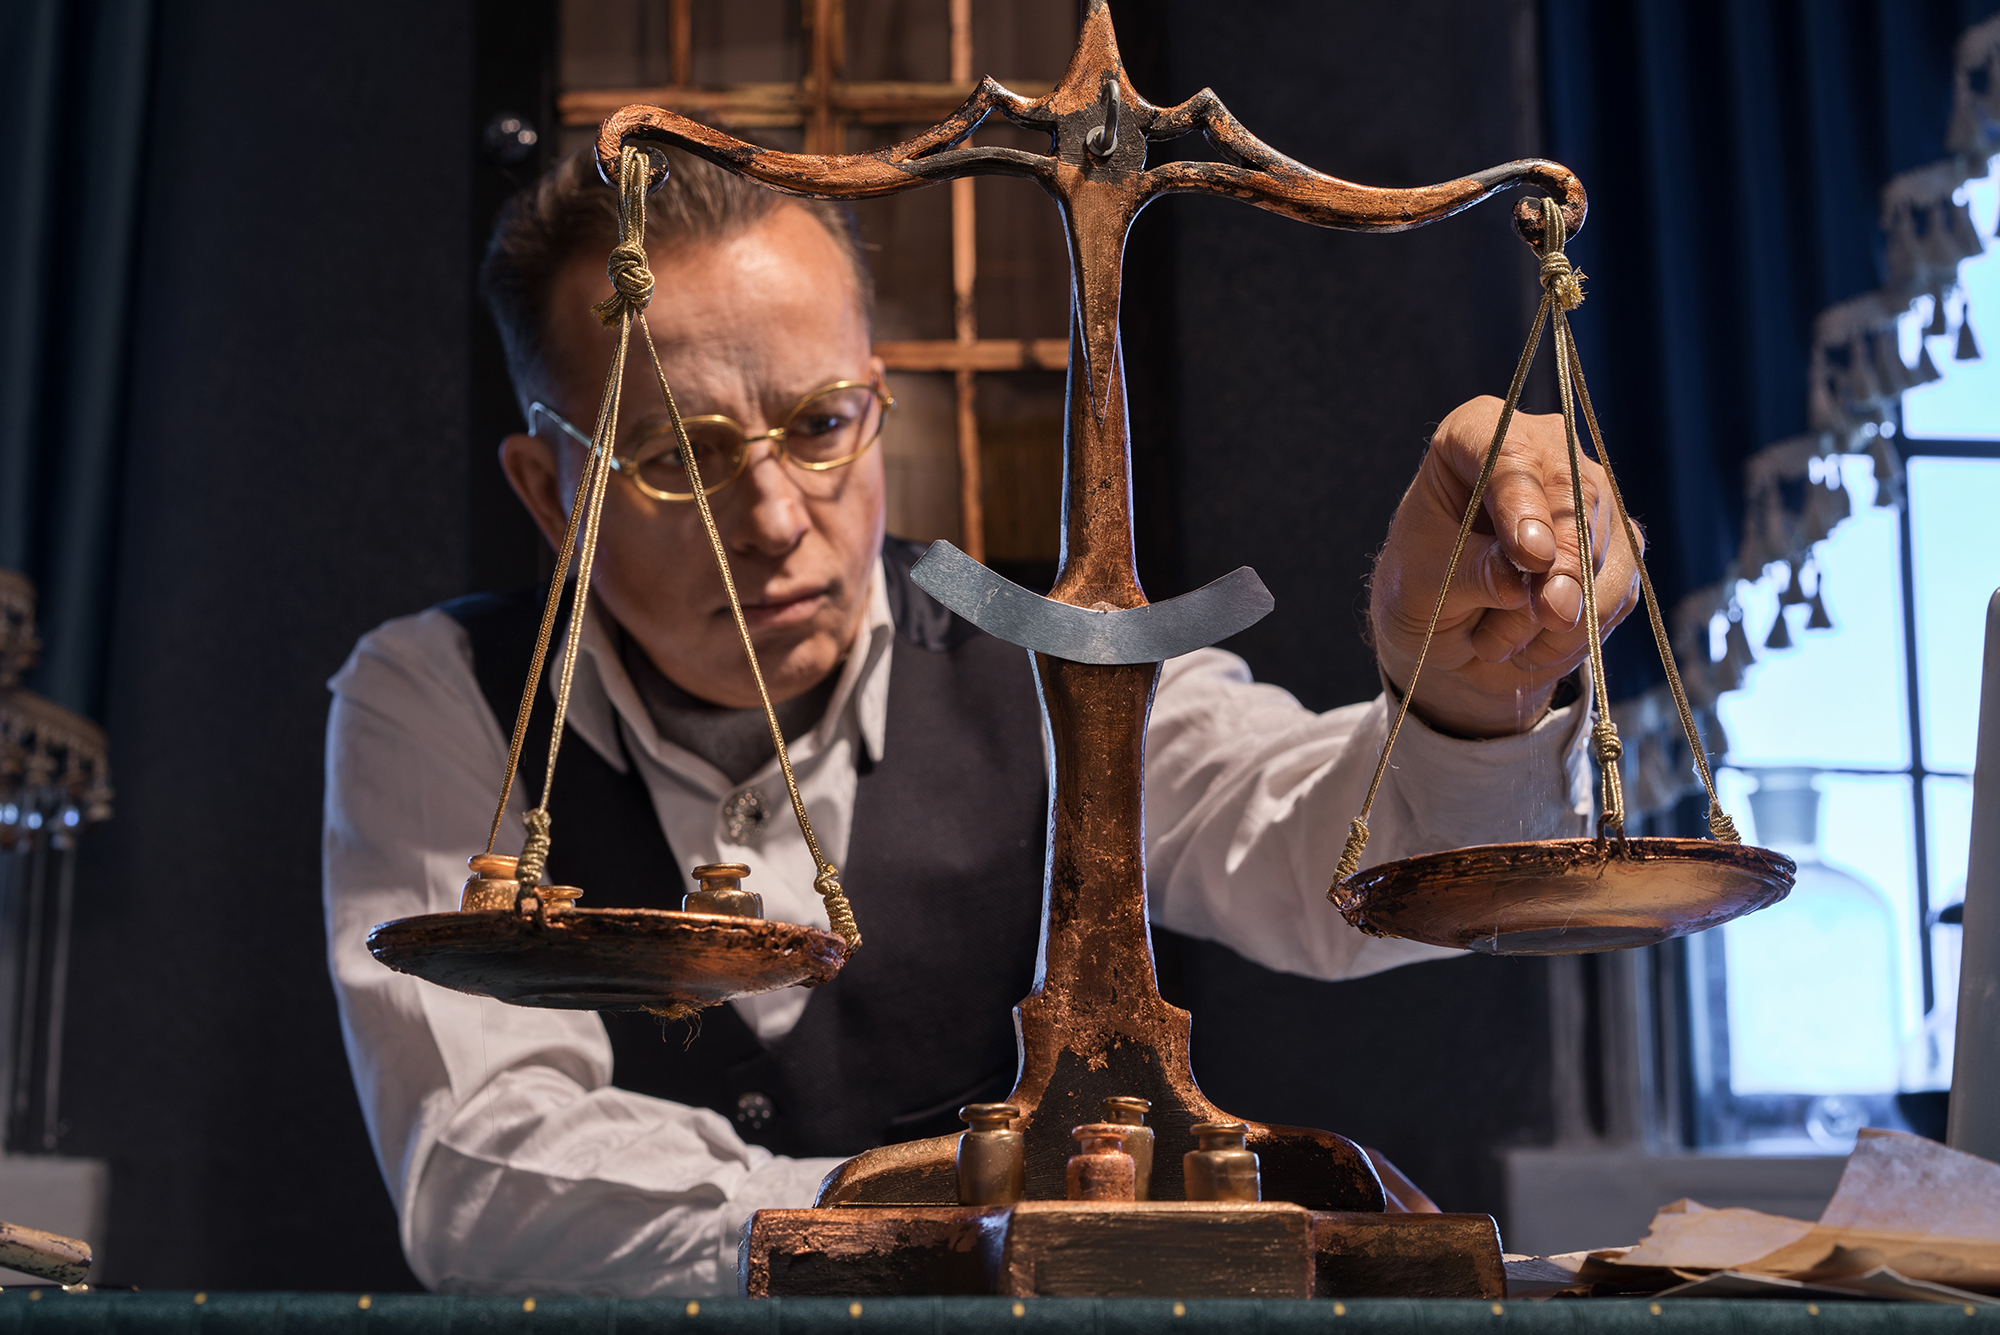 Scientist weighs on an old pharmacy scales